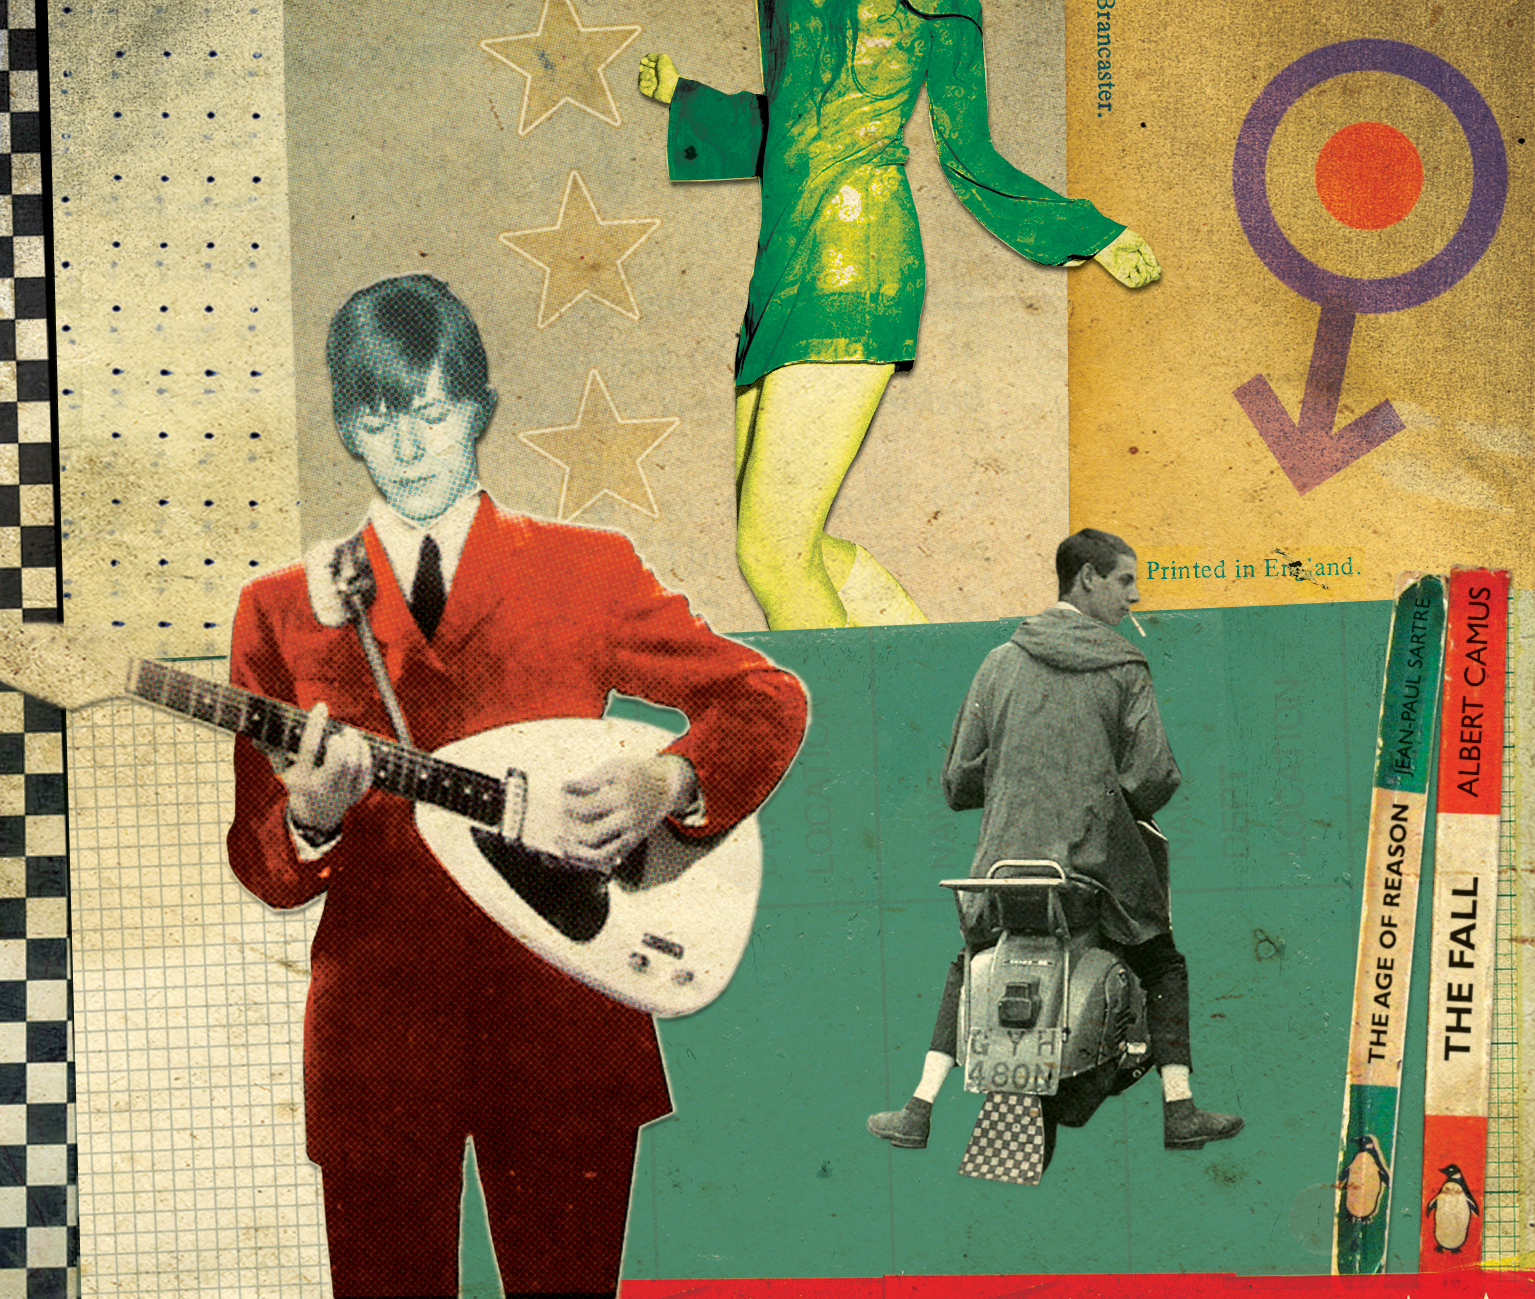 David Bowie is part of mod culture along with The Who (Picture: IFAN BATES/nbillustration.co.uk)